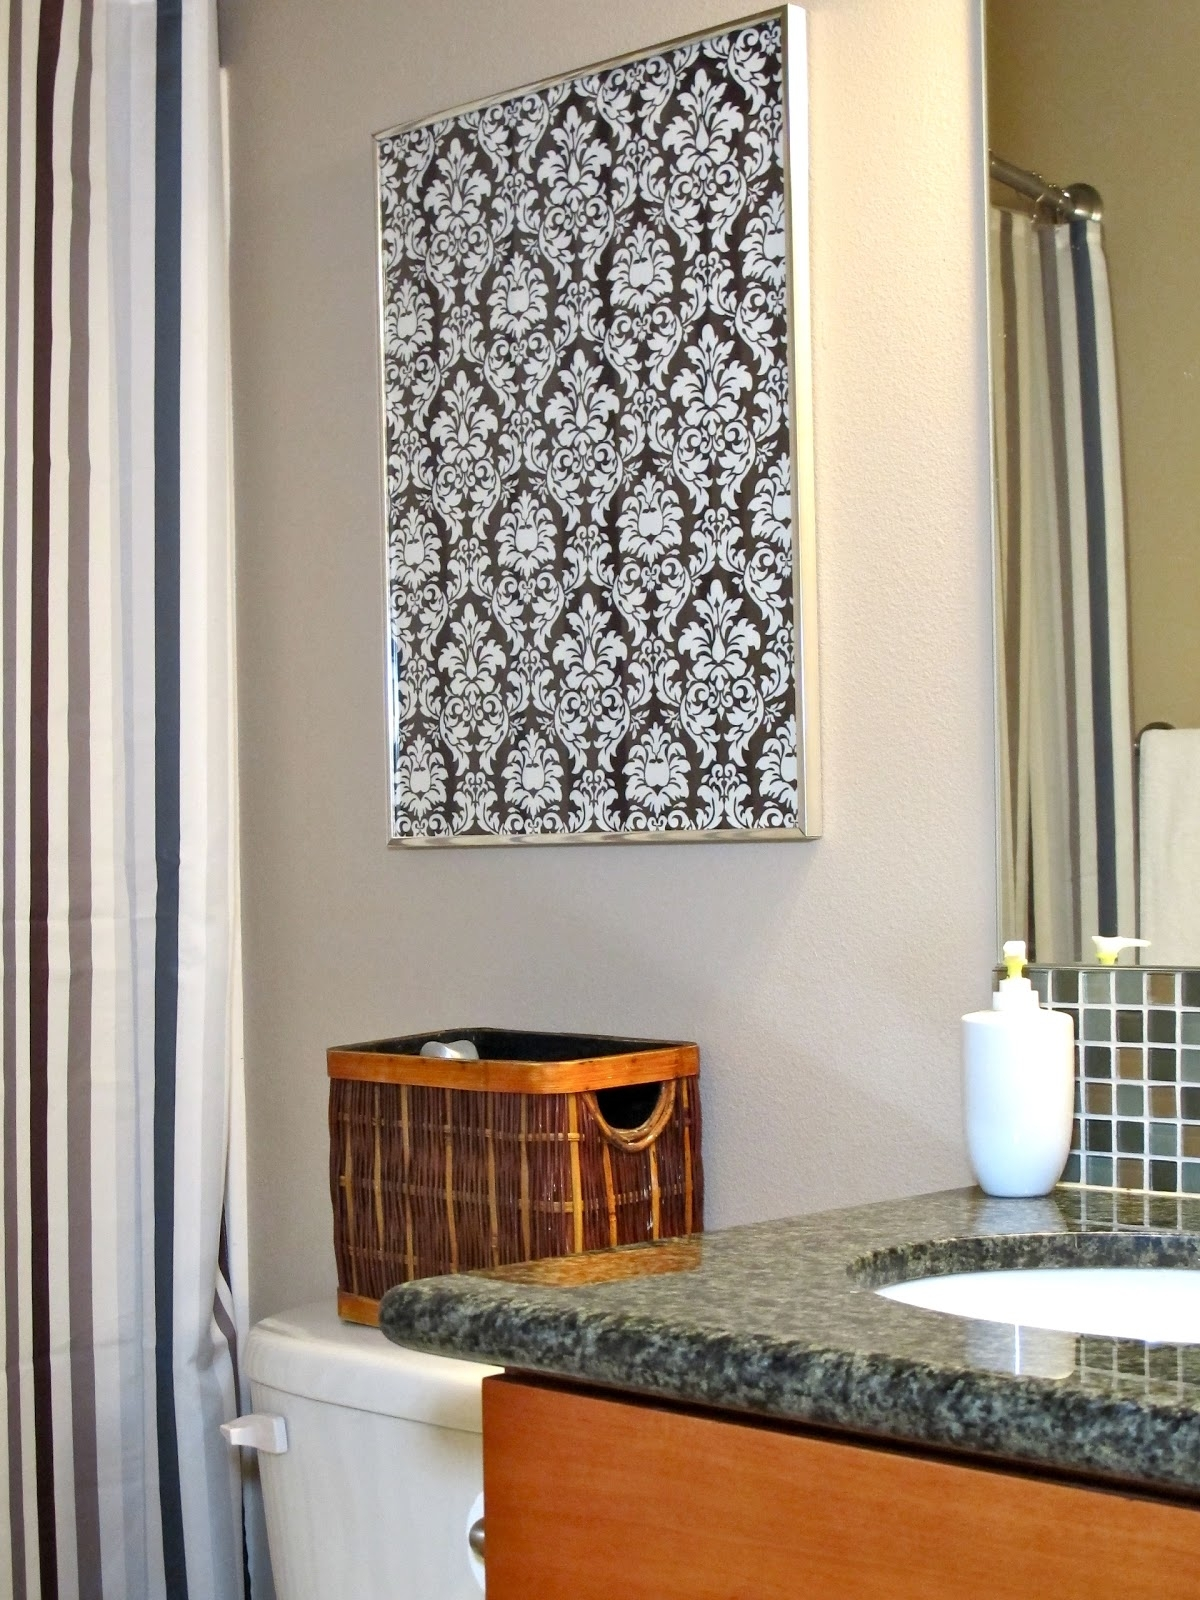 Blukatkraft: Diy Quick Easy Wall Art For Bathroom Within Most Current Damask Fabric Wall Art (View 15 of 15)